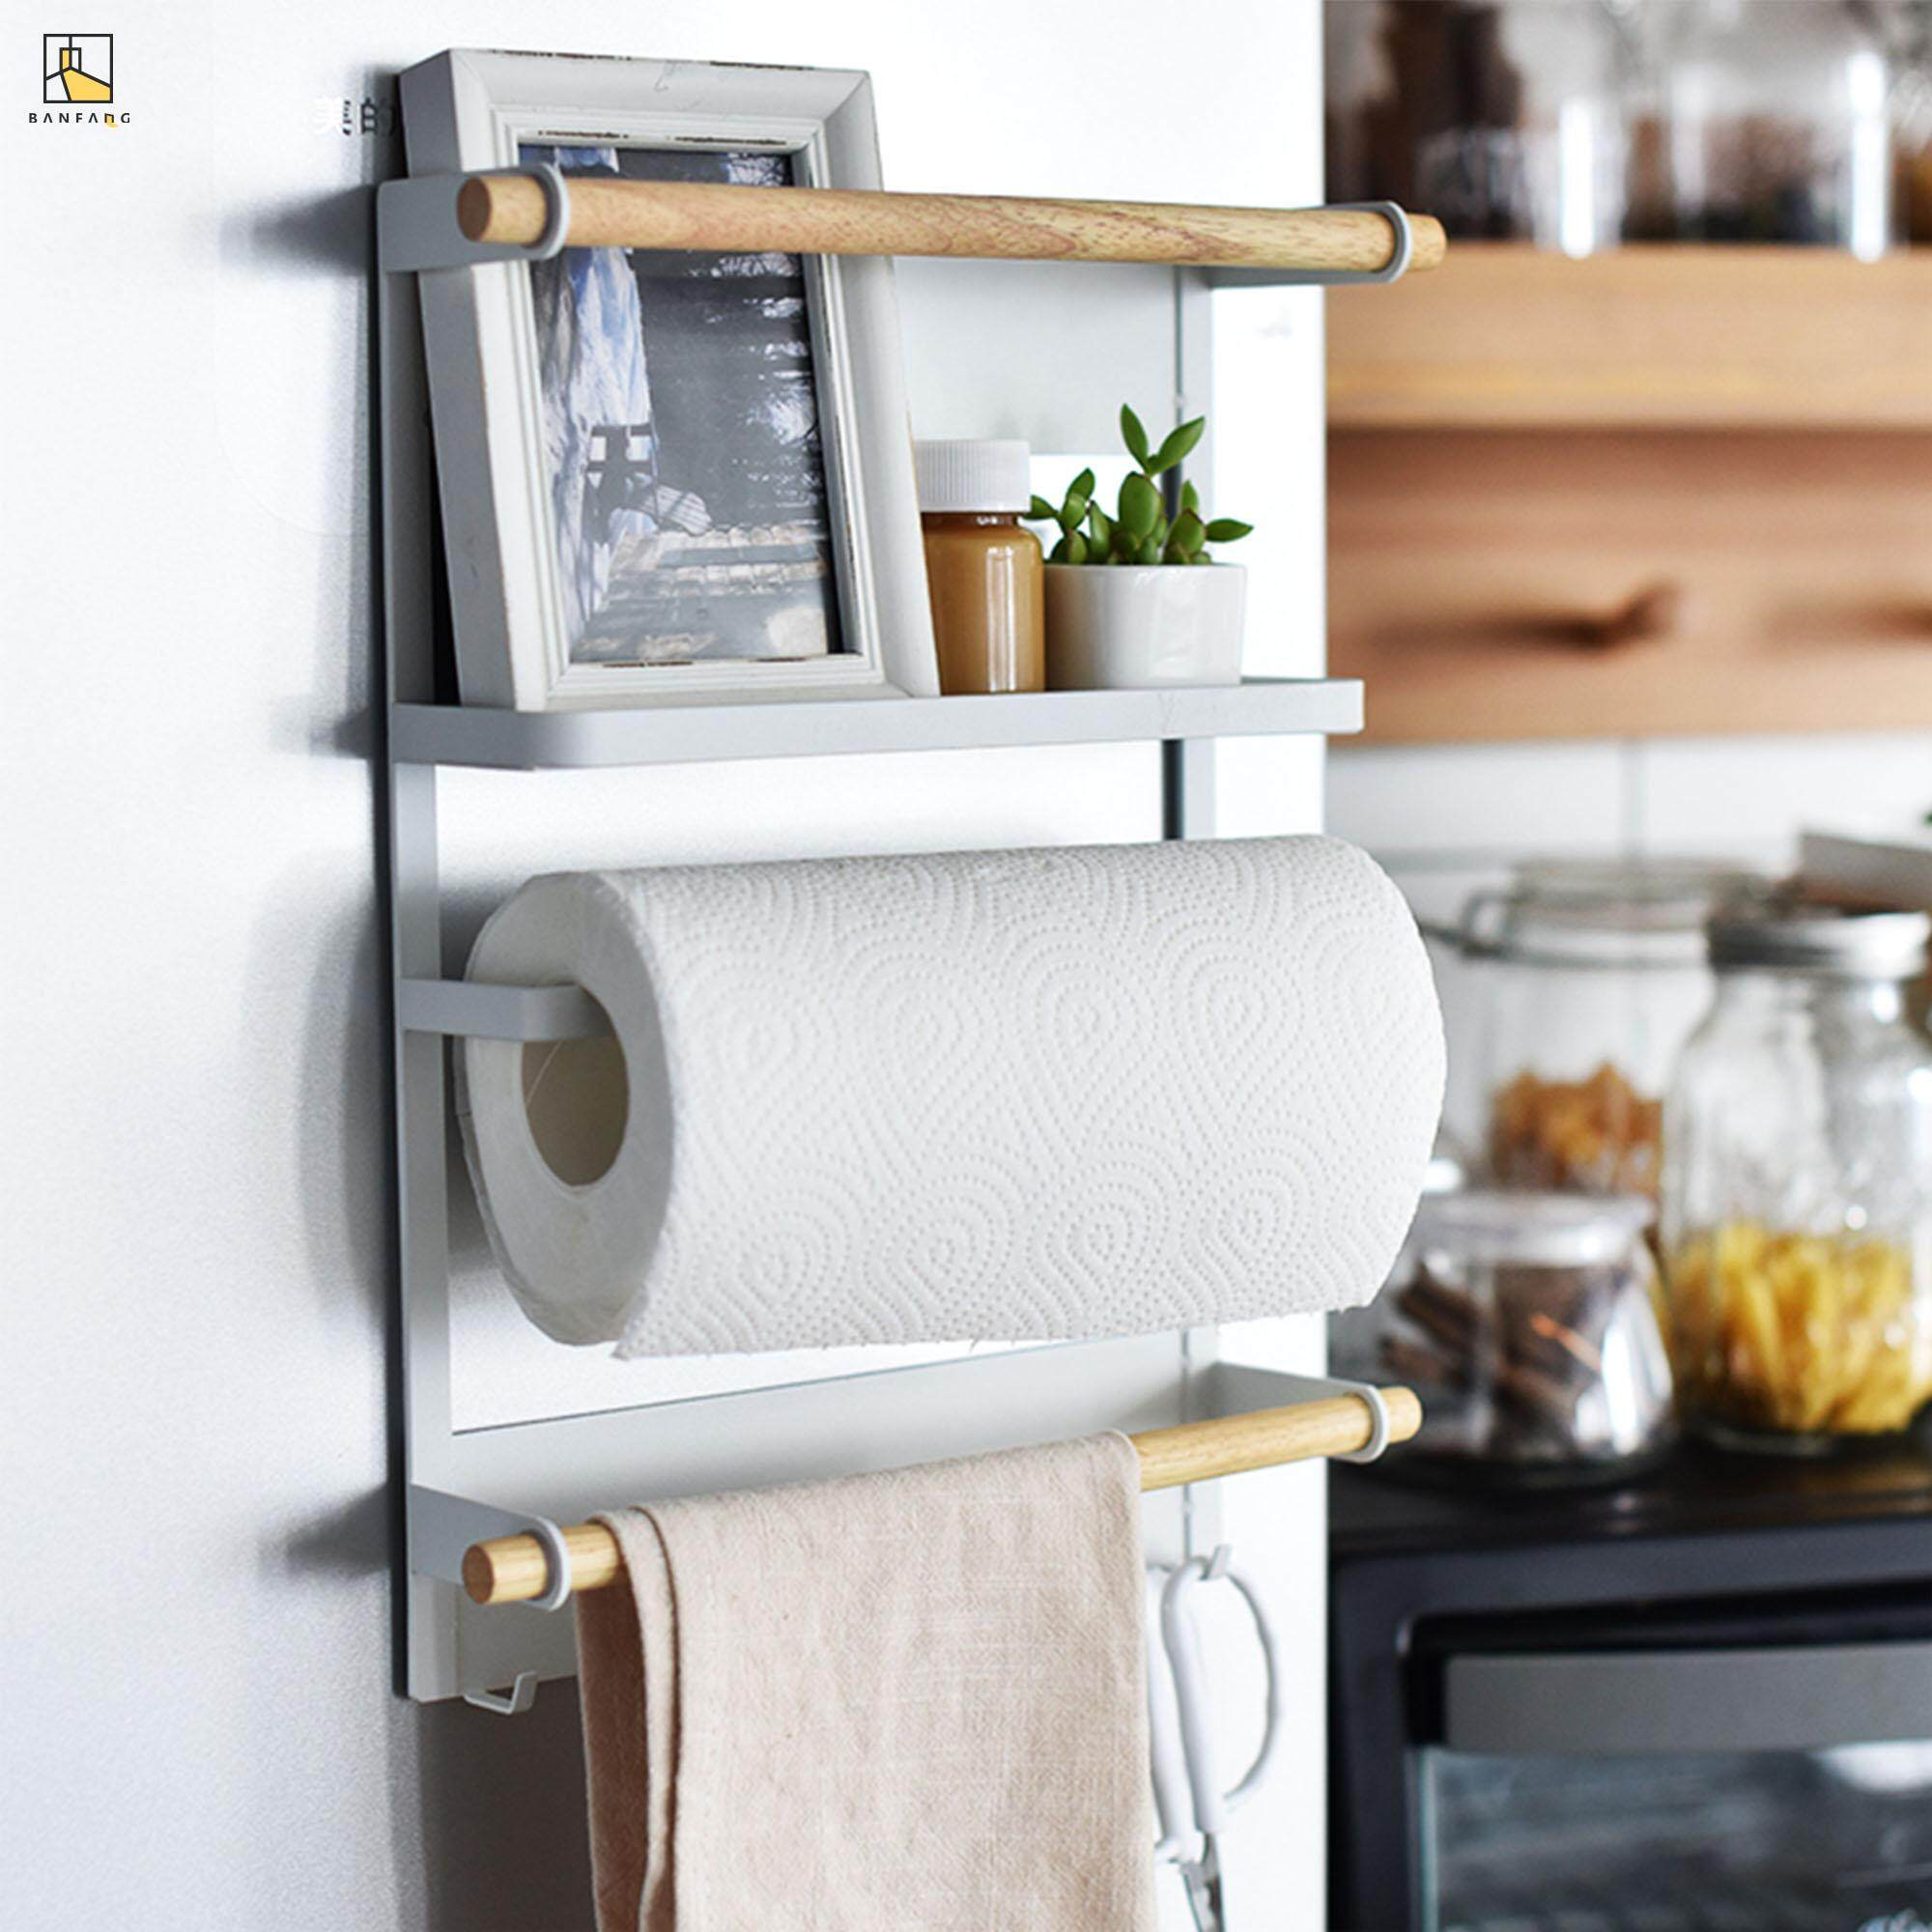 BANFANG Creative Iron art magnetic storage rackfree shipping dish rack kitchen cabinet storage rack lunch box rack kitchen rak pinggan dish drainer shelf rack kitchen storage cake stand stainless steel kitchen rack food container cake mould dish spice